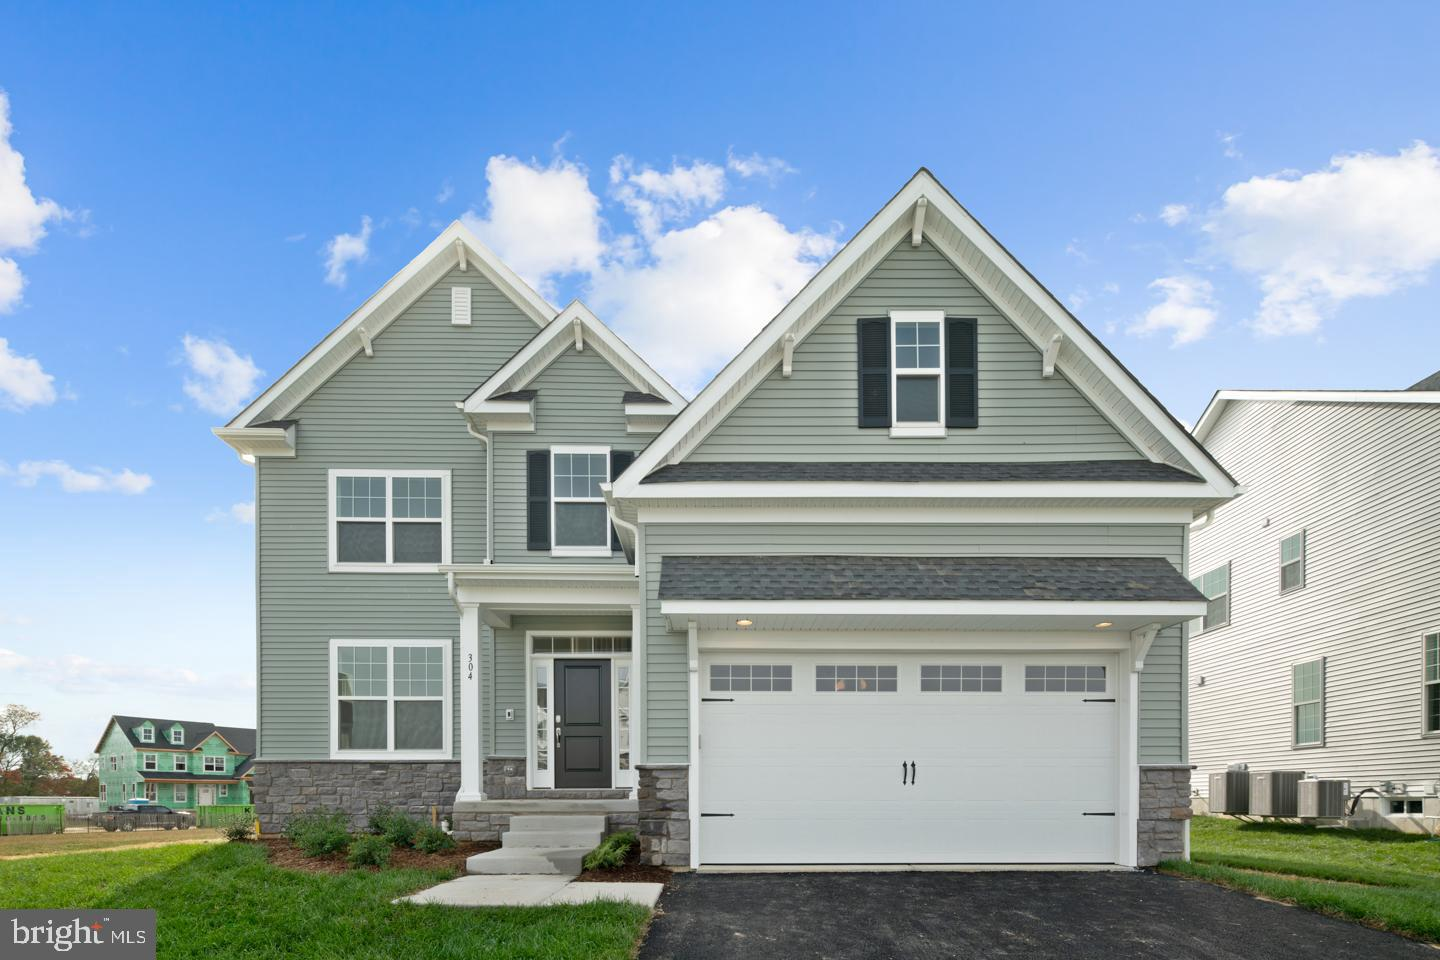 Popular Bethel model available for JUNE close! Enjoy the new home purchasing process with the ease of Everything~s Included! 5~ hardwood spans throughout the entire main floor, tile in all baths, stainless steel appliances (fridge, too!), in the kitchen, upstairs laundry room with sink, washer and dryer ~ and more. This particular Bethel plan features 4 beds, 3.5 baths and a finished basement! The main floor has a wide open floor plan perfect for entertaining. Upstairs you have a loft, 3 spacious bedrooms, and an owners suite that is second to none with a tray ceiling and beautifully appointed owners bath. The pictures shown are of a recently settled Bethel home and are for representation purposes. Our Welcome Home Center is open daily from 10am-6pm but appointments are highly encouraged because of the sales pace. Over 1/3rd of the way sold!